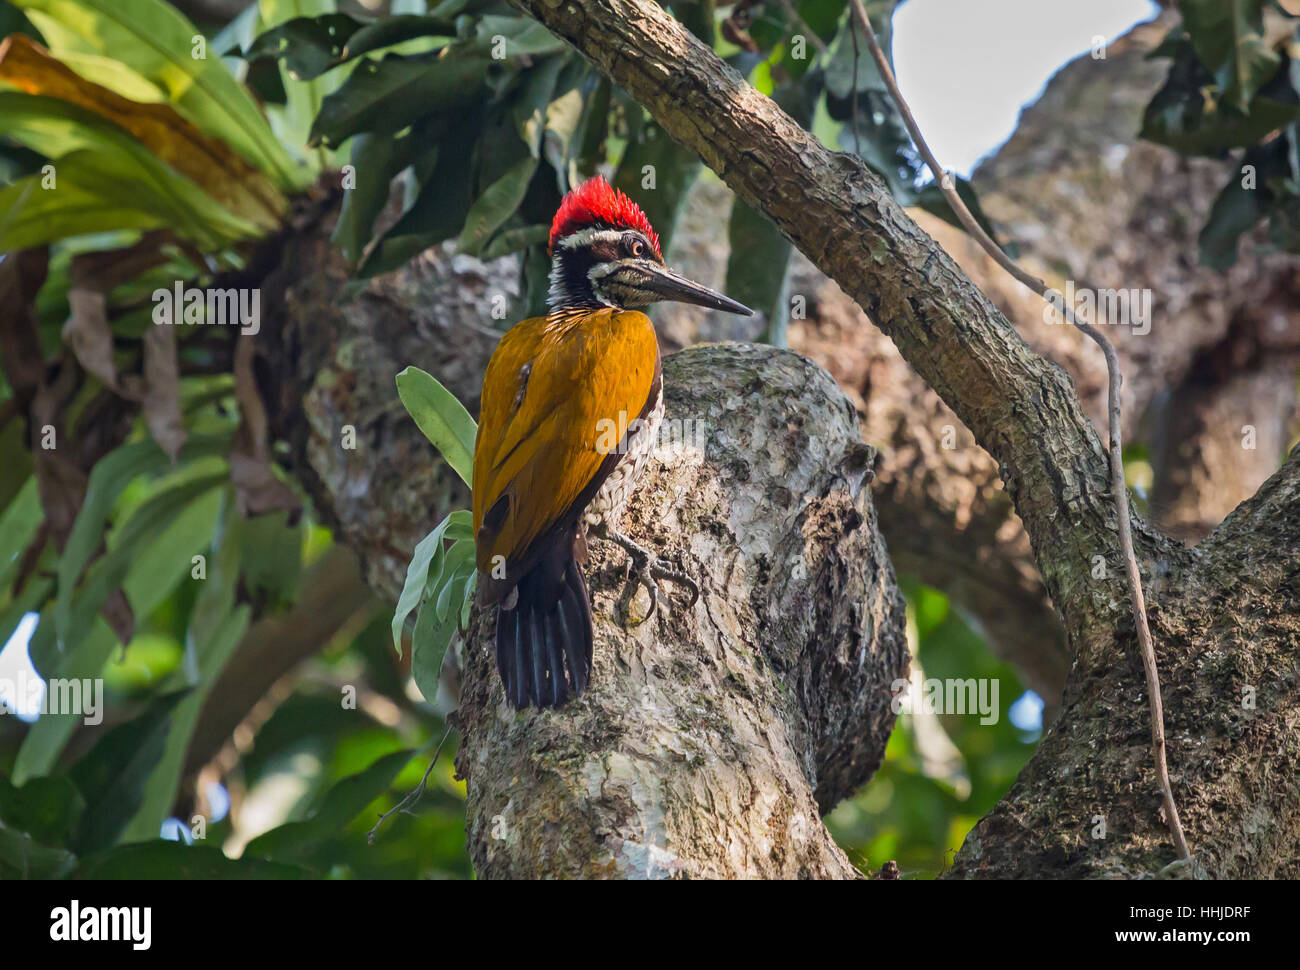 Indian Black-rumped Flameback Woodpecker bird perched vertically on the stem of a tree. - Stock Image